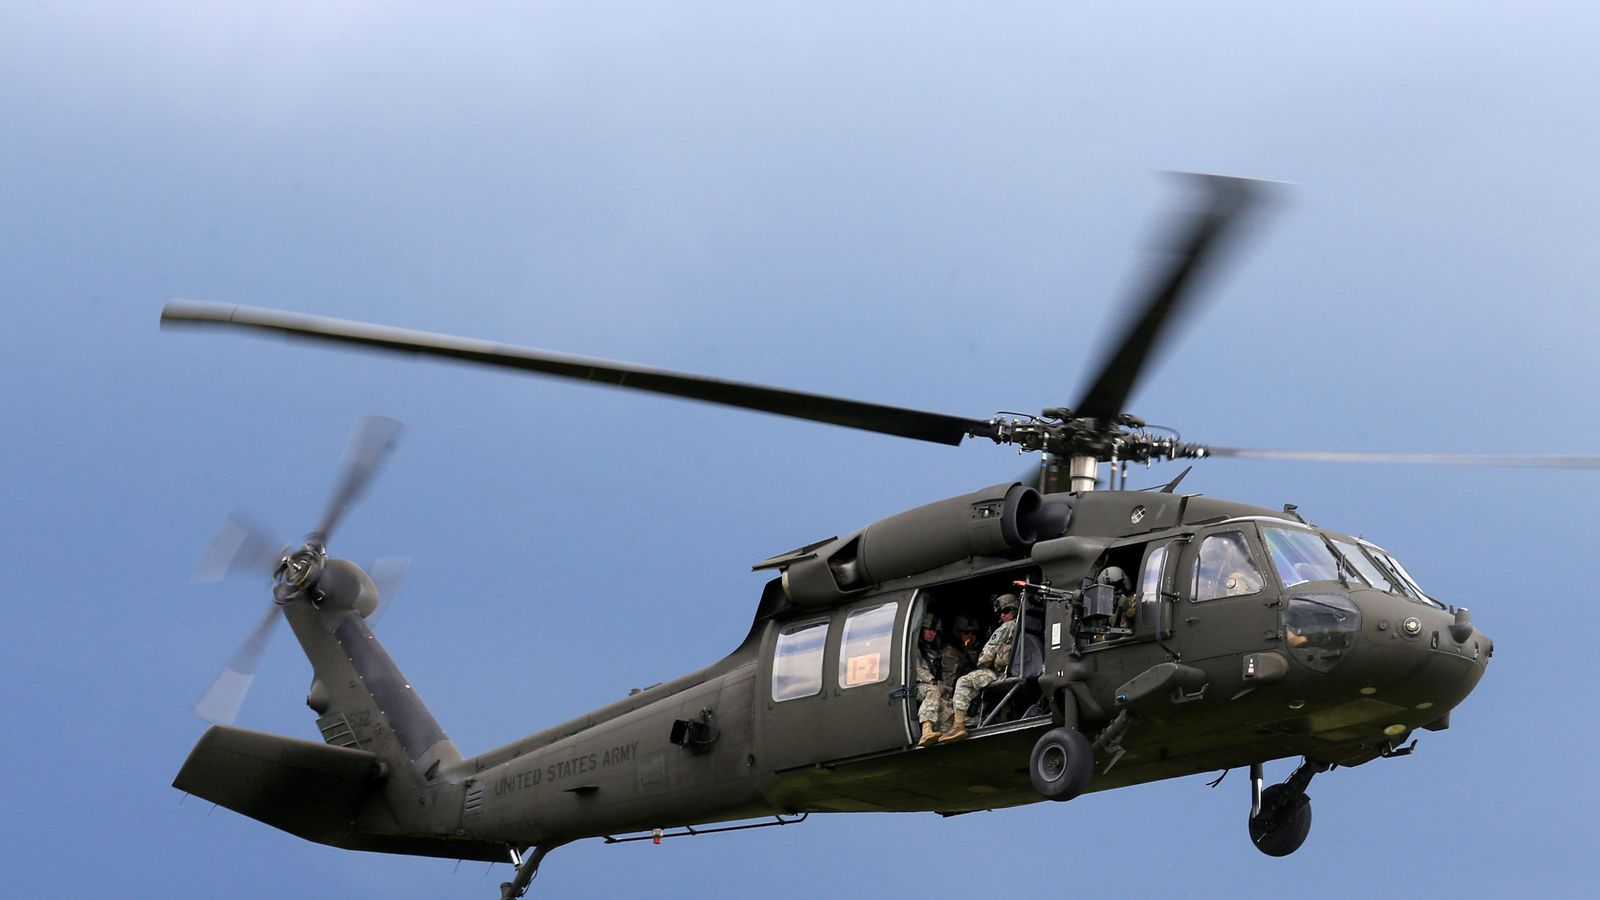 Five missing after US Army helicopter crashes